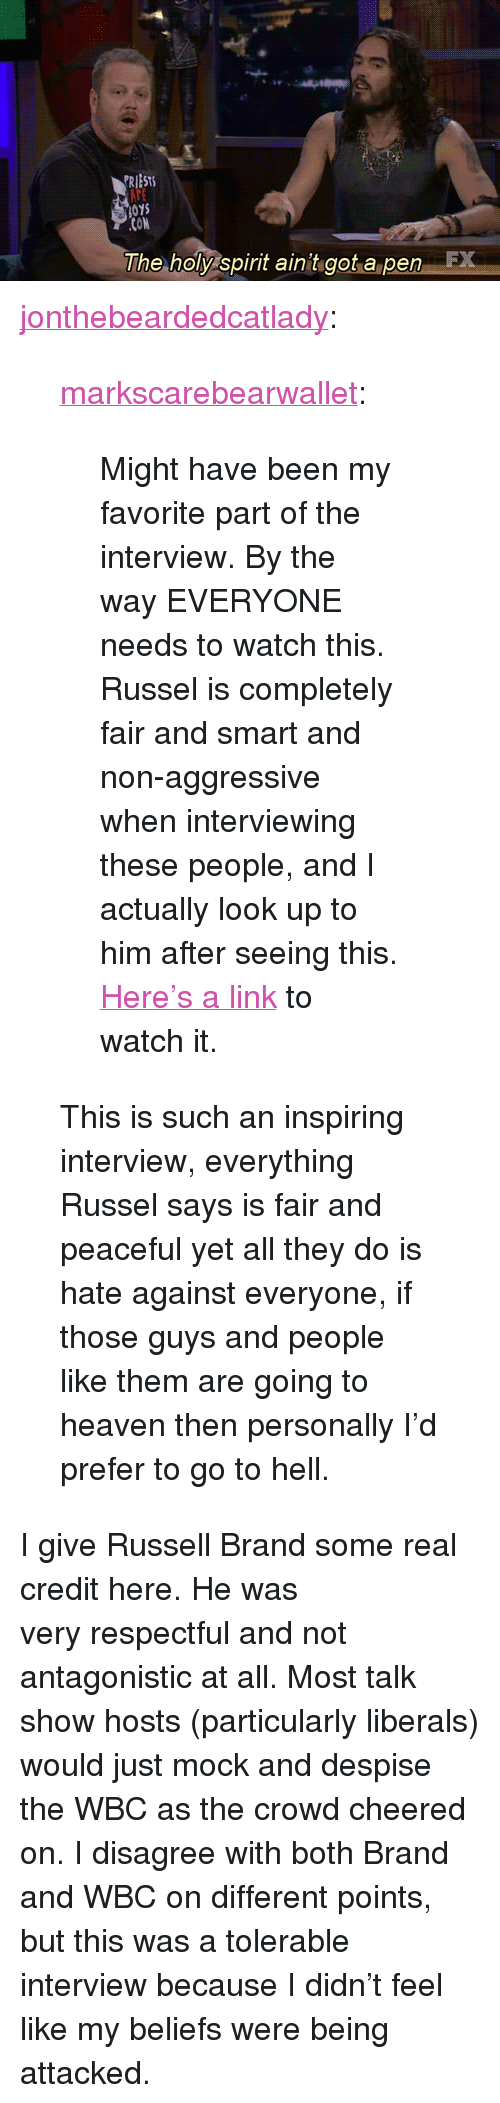 """Russell Brand: RIEST  015  CON  The holy spirit ain't got a penE <p><a class=""""tumblr_blog"""" href=""""http://jonthebeardedcatlady.tumblr.com/post/38971658841/markscarebearwallet-might-have-been-my-favorite"""">jonthebeardedcatlady</a>:</p> <blockquote> <p><a class=""""tumblr_blog"""" href=""""http://markscarebearwallet.tumblr.com/post/38969251833"""">markscarebearwallet</a>:</p> <blockquote> <p>Might have been my favorite part of the interview. By the way EVERYONE needs to watch this. Russel is completely fair and smart and non-aggressive when interviewing these people, and I actually look up to him after seeing this.</p> <p><a href=""""https://www.youtube.com/watch?v=OBA6qlHW8po"""">Here's a link</a> to watch it.</p> </blockquote> <p>This is such an inspiring interview, everything Russel says is fair and peaceful yet all they do is hate against everyone, if those guys and people like them are going to heaven then personally I'd prefer to go to hell.</p> </blockquote> <p>I give Russell Brand some real credit here. He was veryrespectful and not antagonistic at all. Most talk show hosts (particularly liberals) would just mock and despise the WBC as the crowd cheered on.I disagree with both Brand and WBC on different points, but this was a tolerable interview because I didn&rsquo;t feel like my beliefs were being attacked.</p>"""